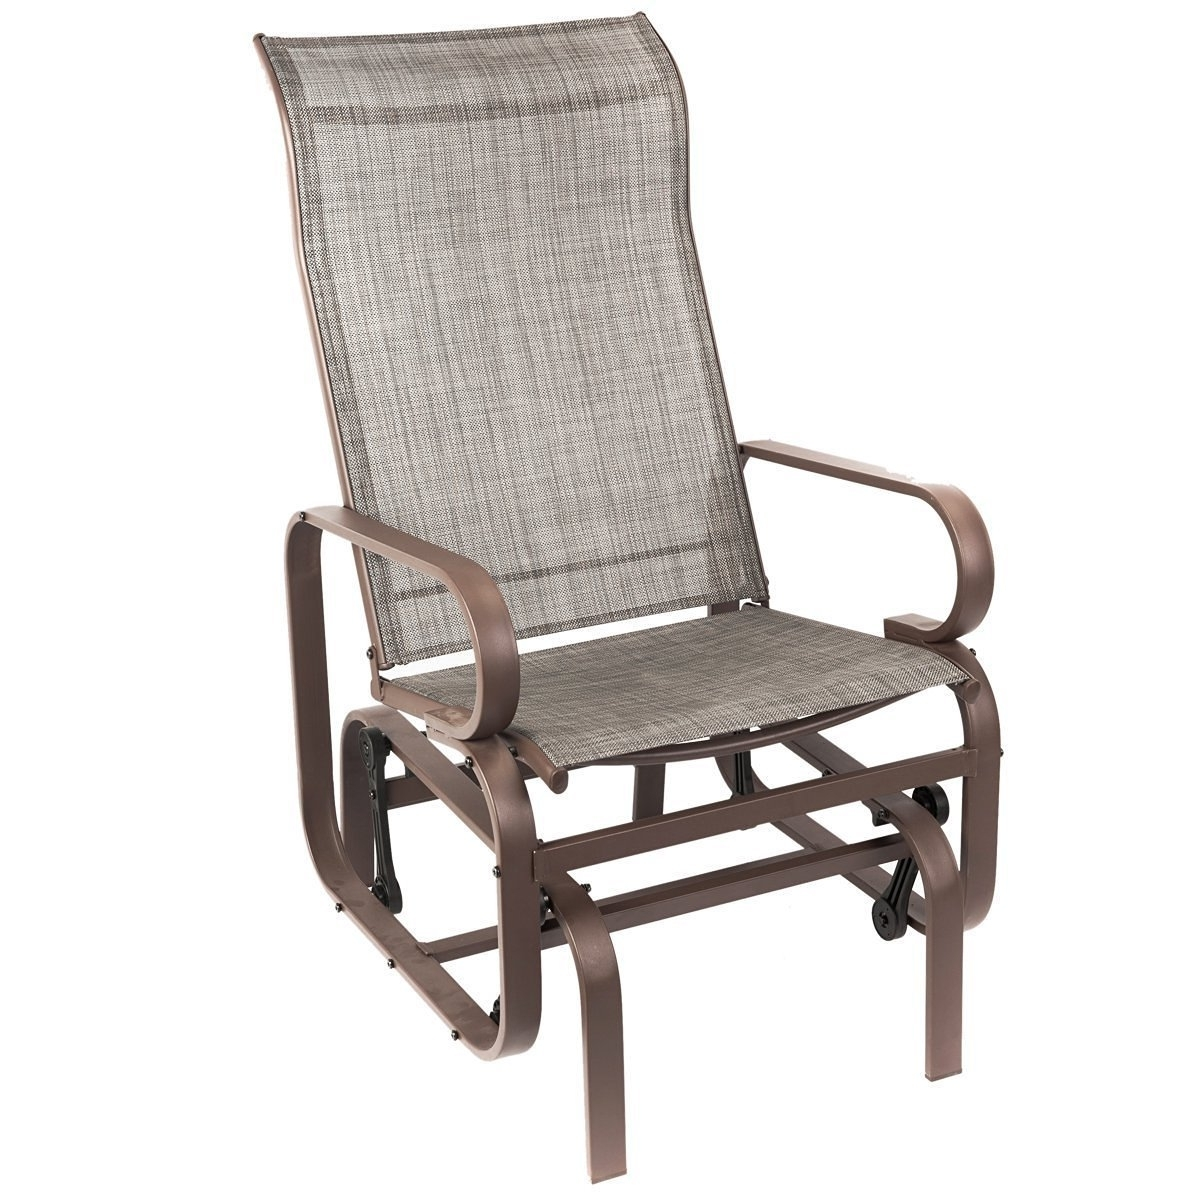 Naturefun Outdoor Patio Rocker Chair, Balcony Glider Rocking Lounge Within Well Known Patio Rocking Chairs With Covers (View 7 of 20)